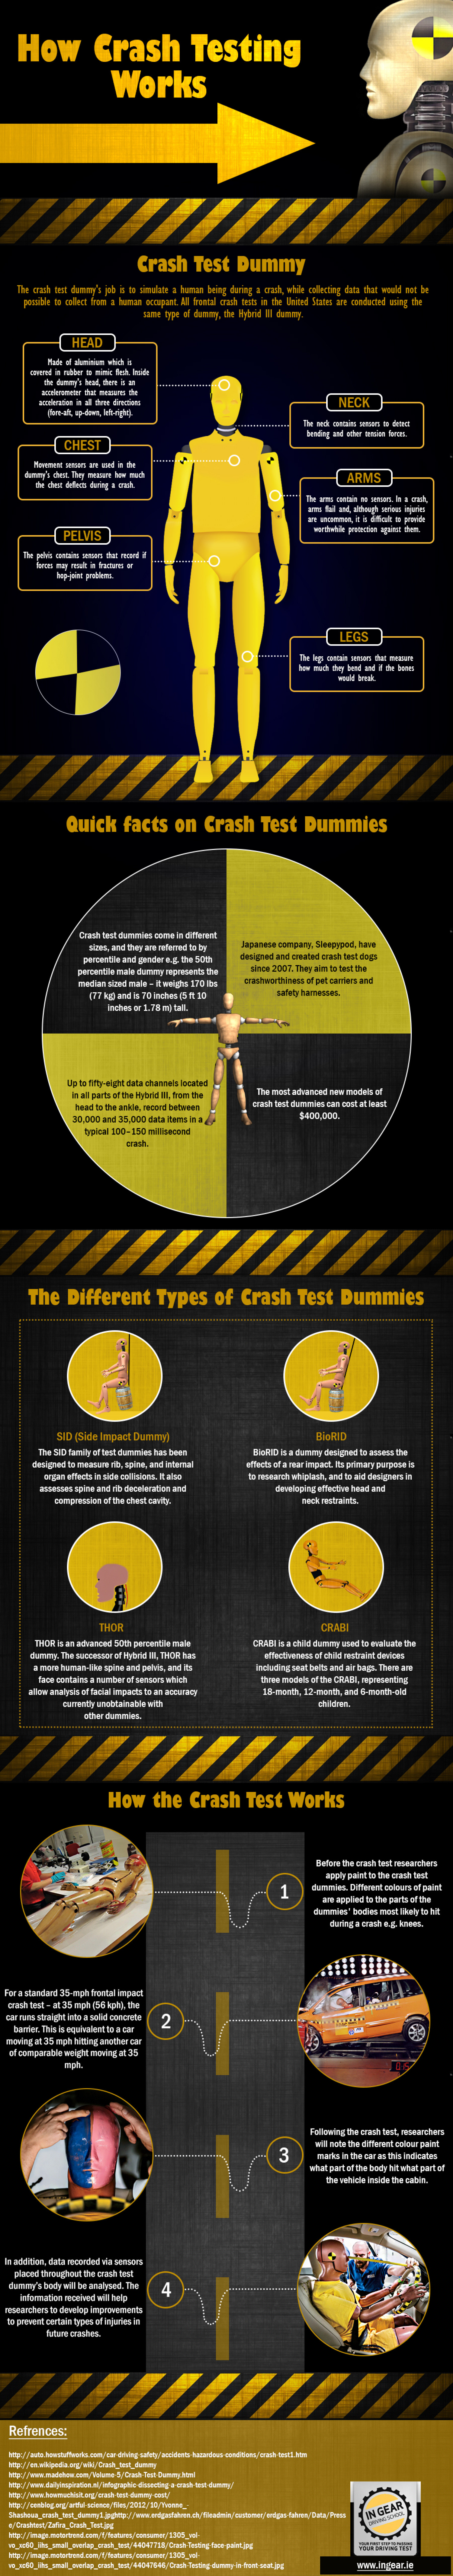 How Crash Testing Works Infographic